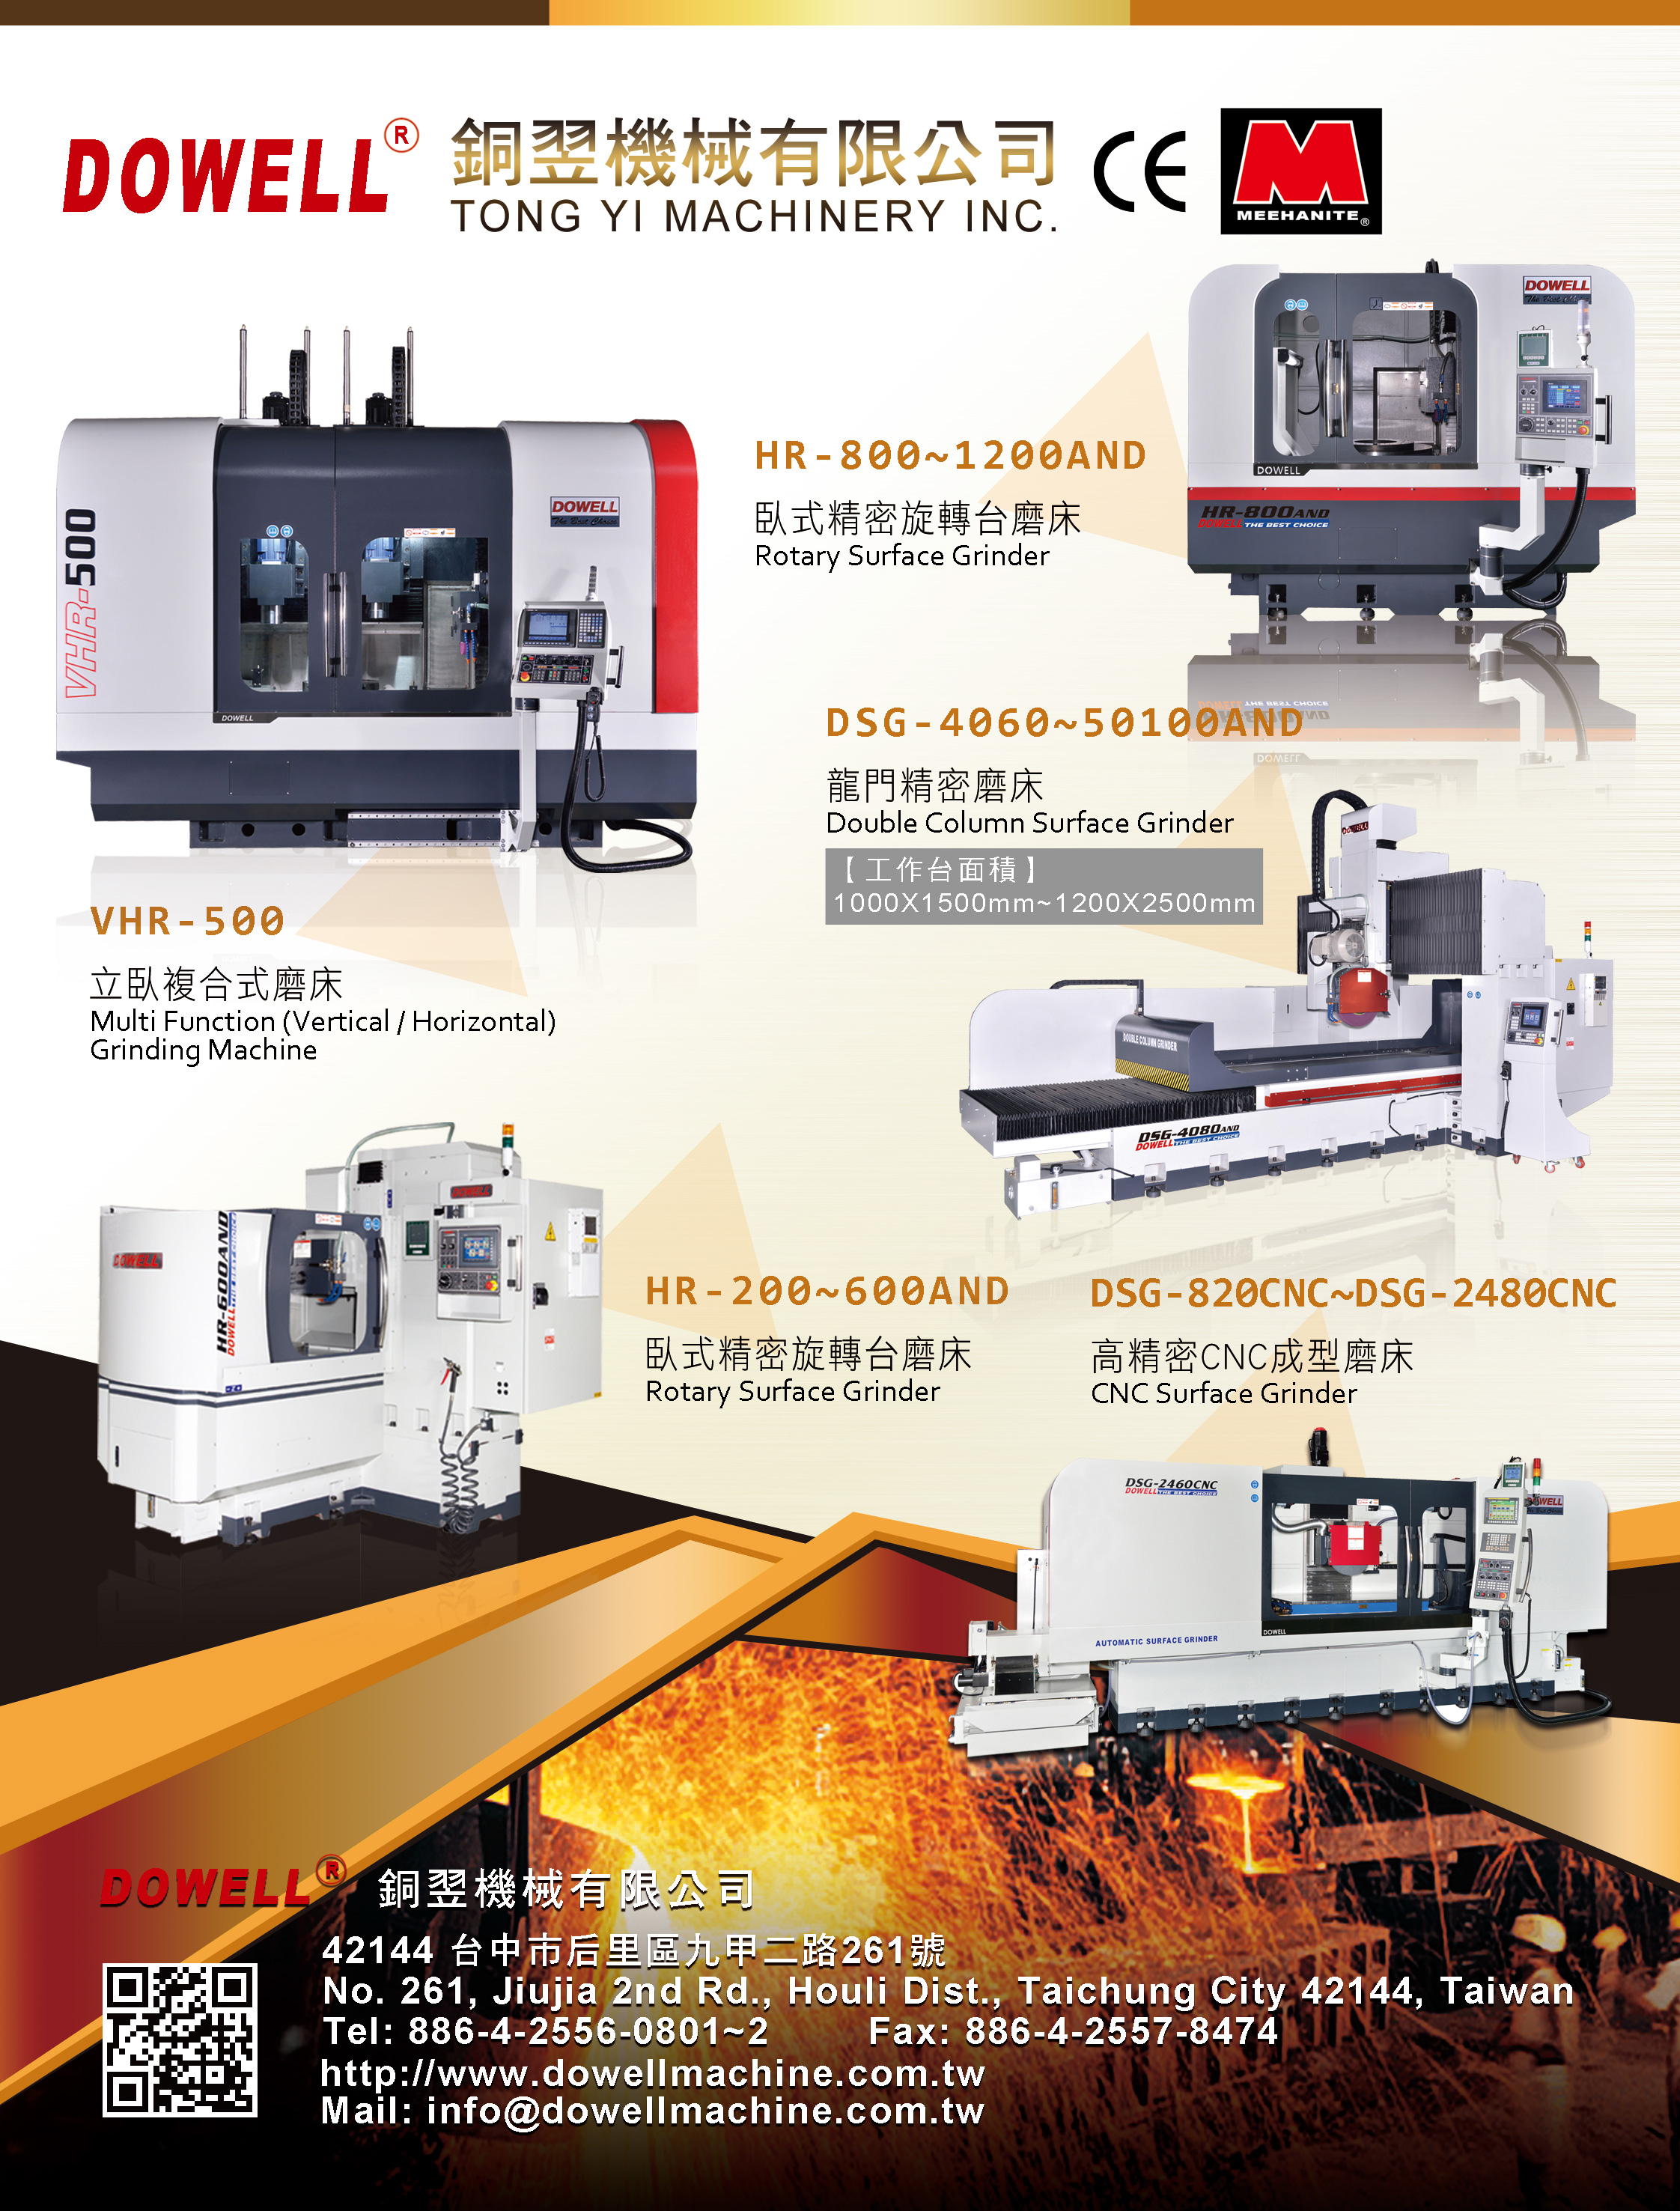 TONG YI MACHINERY INC.